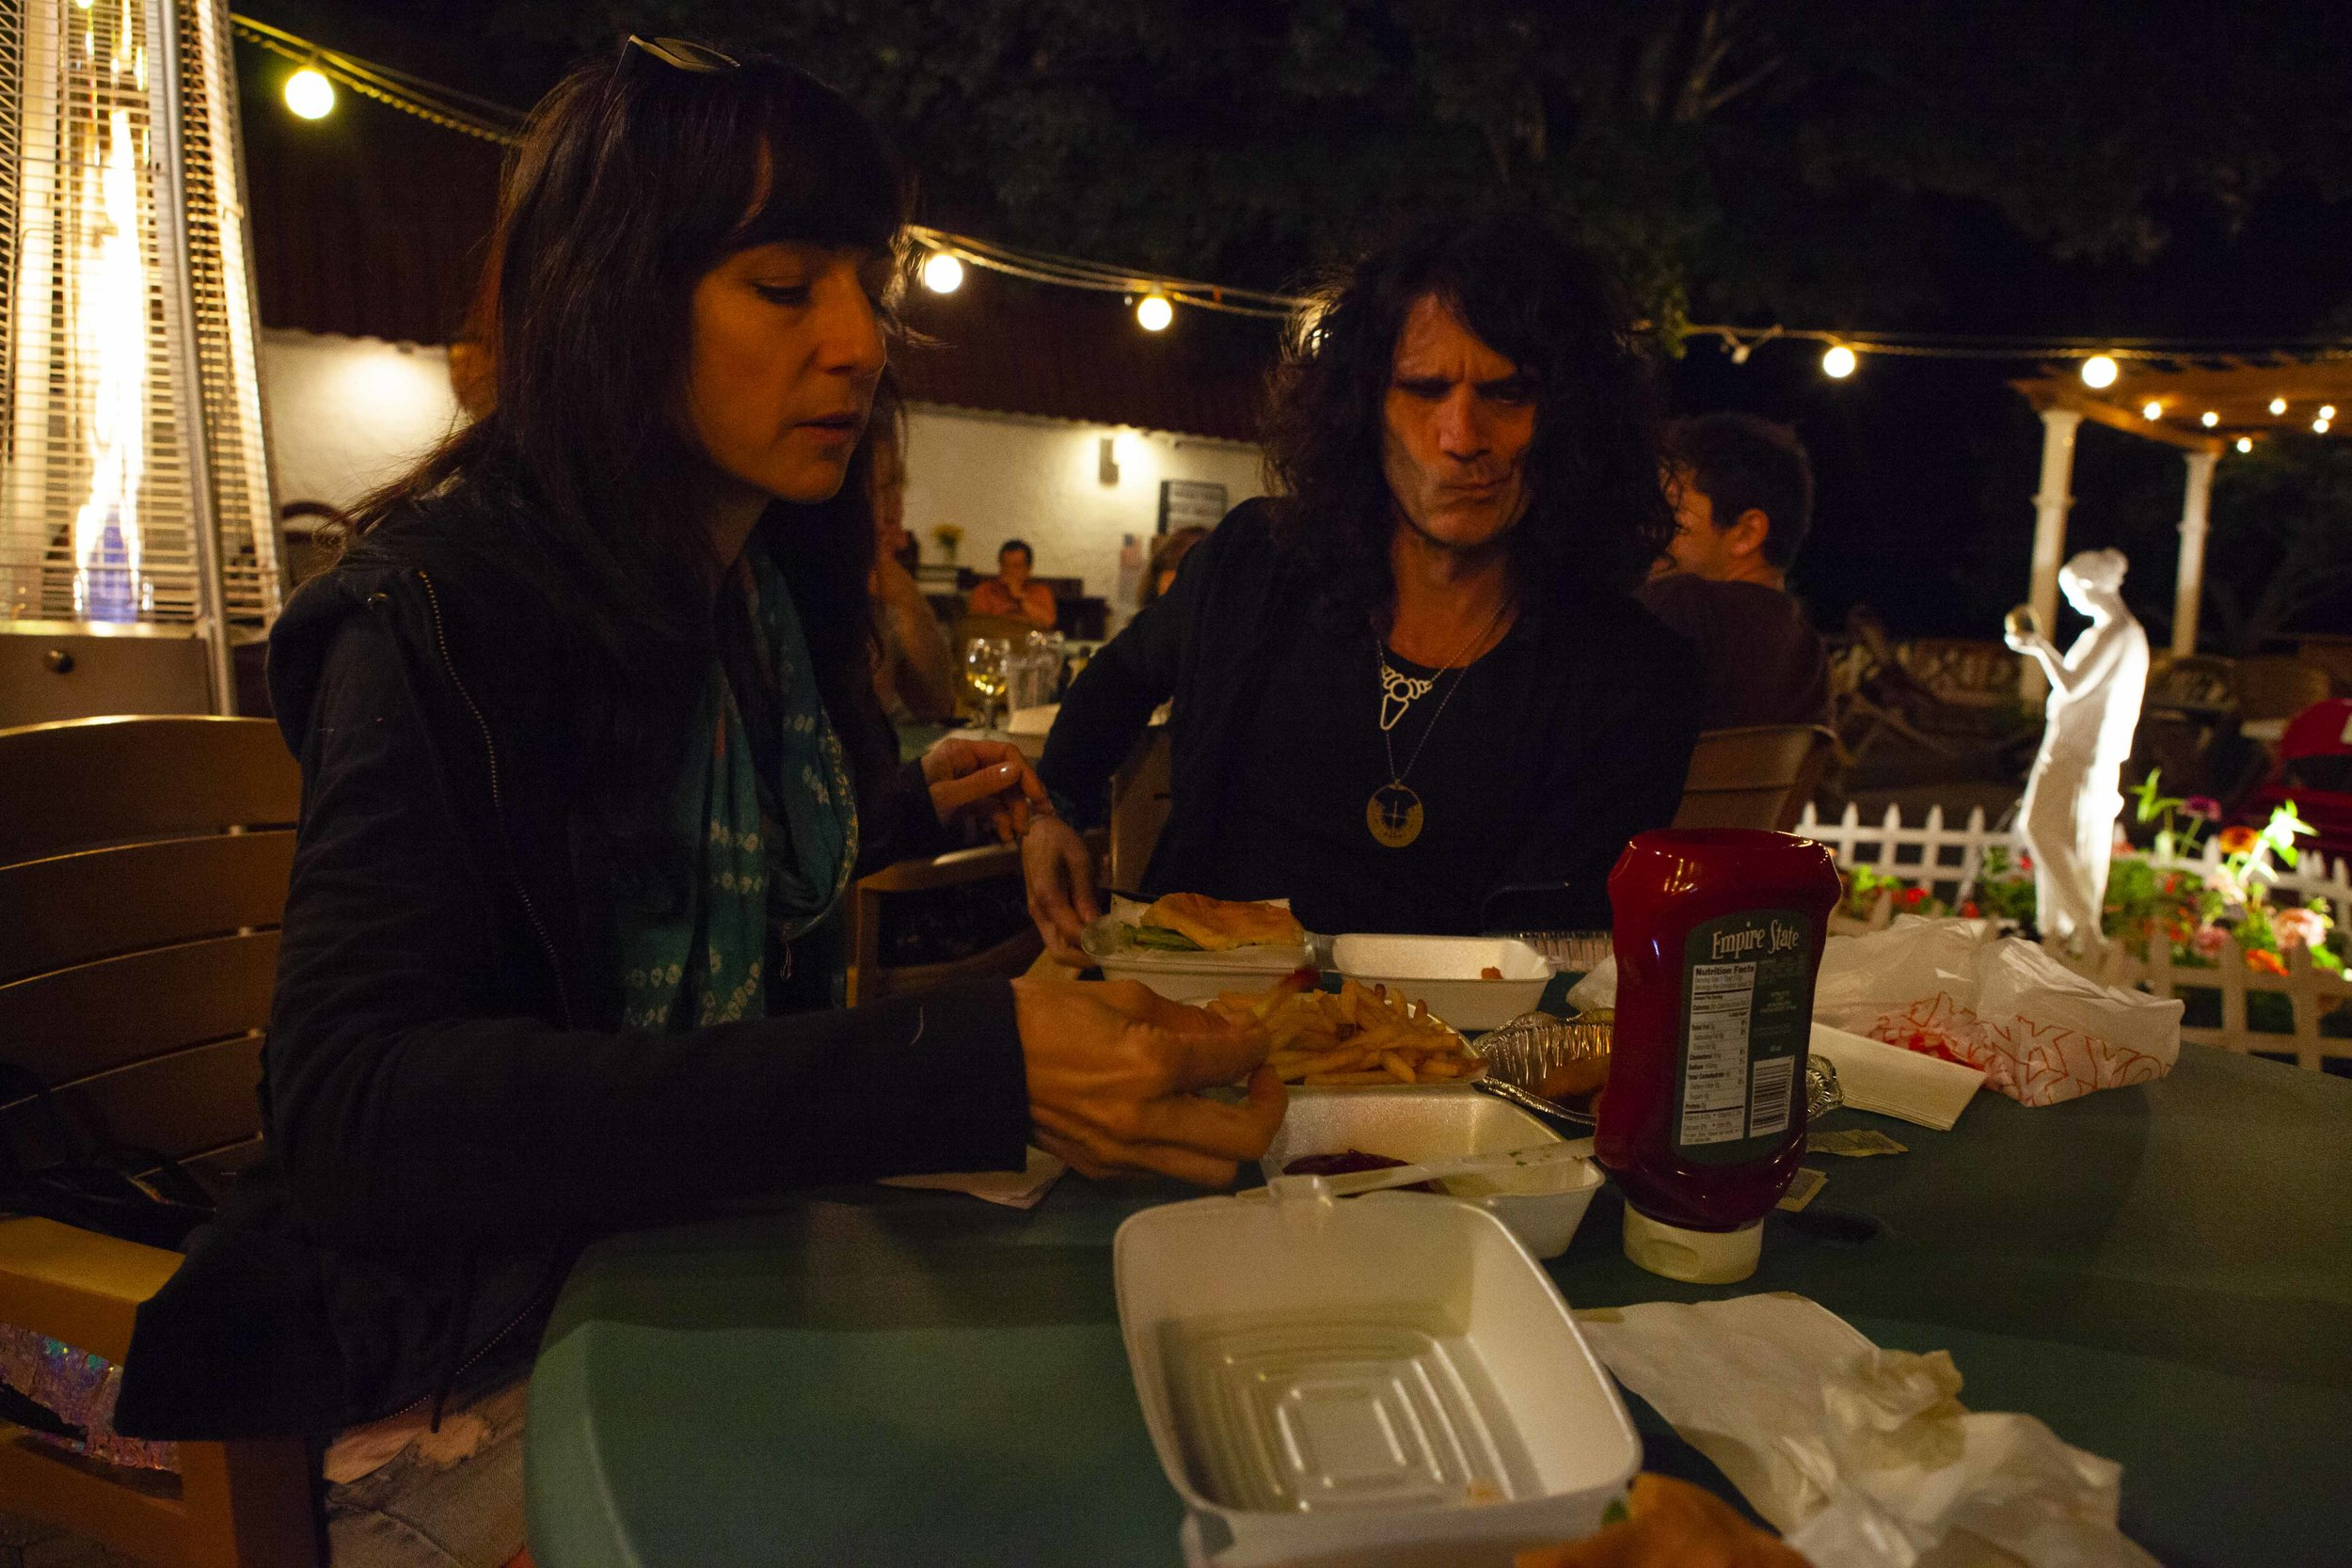 Me, mom, and Rich, got some cheeseburgers, french fries, and talked about organic ketchup.